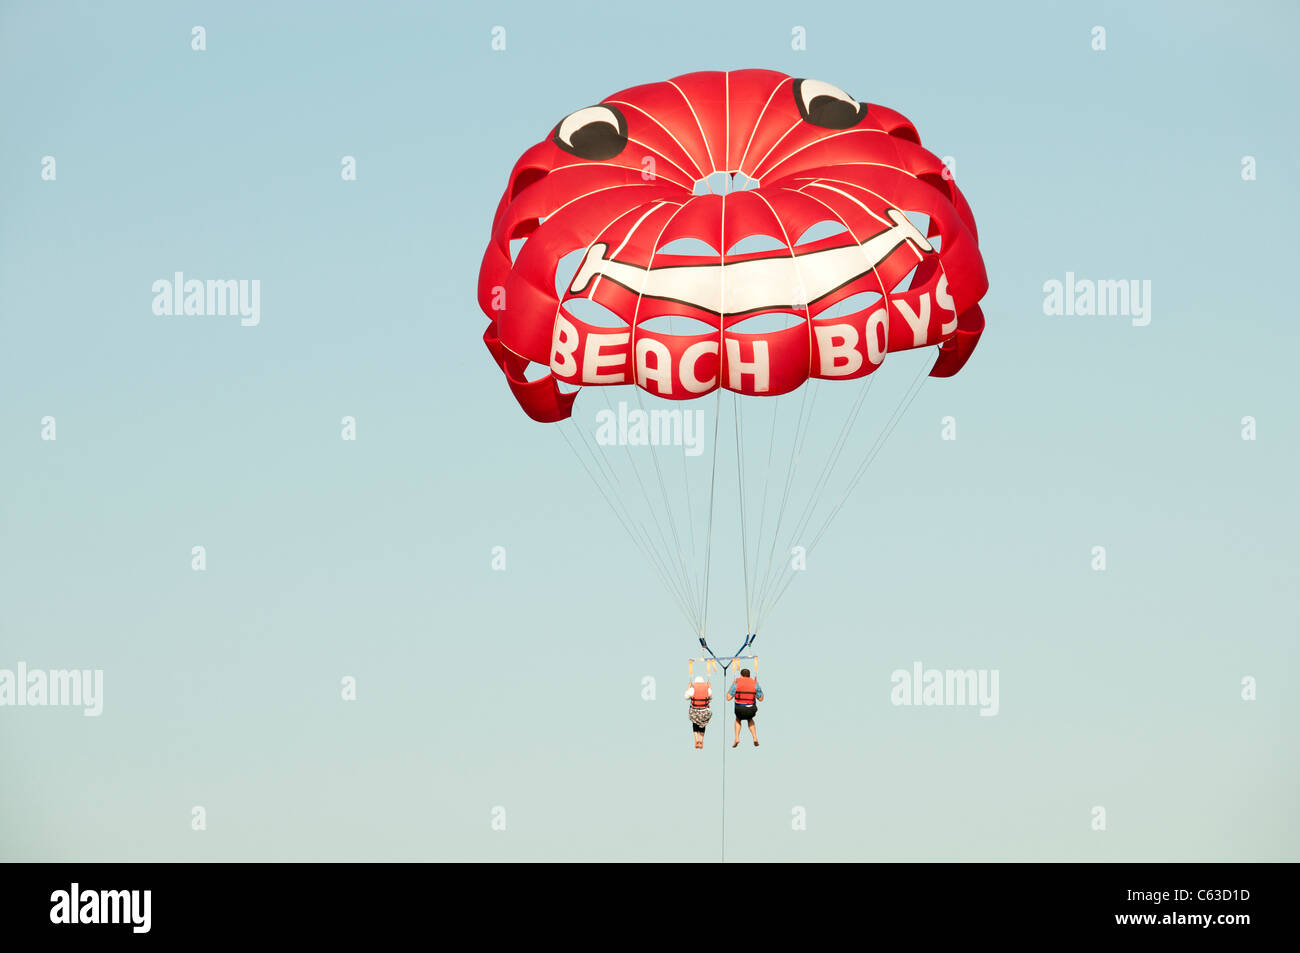 Turkey Sea parasail para sail flying beach boat  beach boys - Stock Image